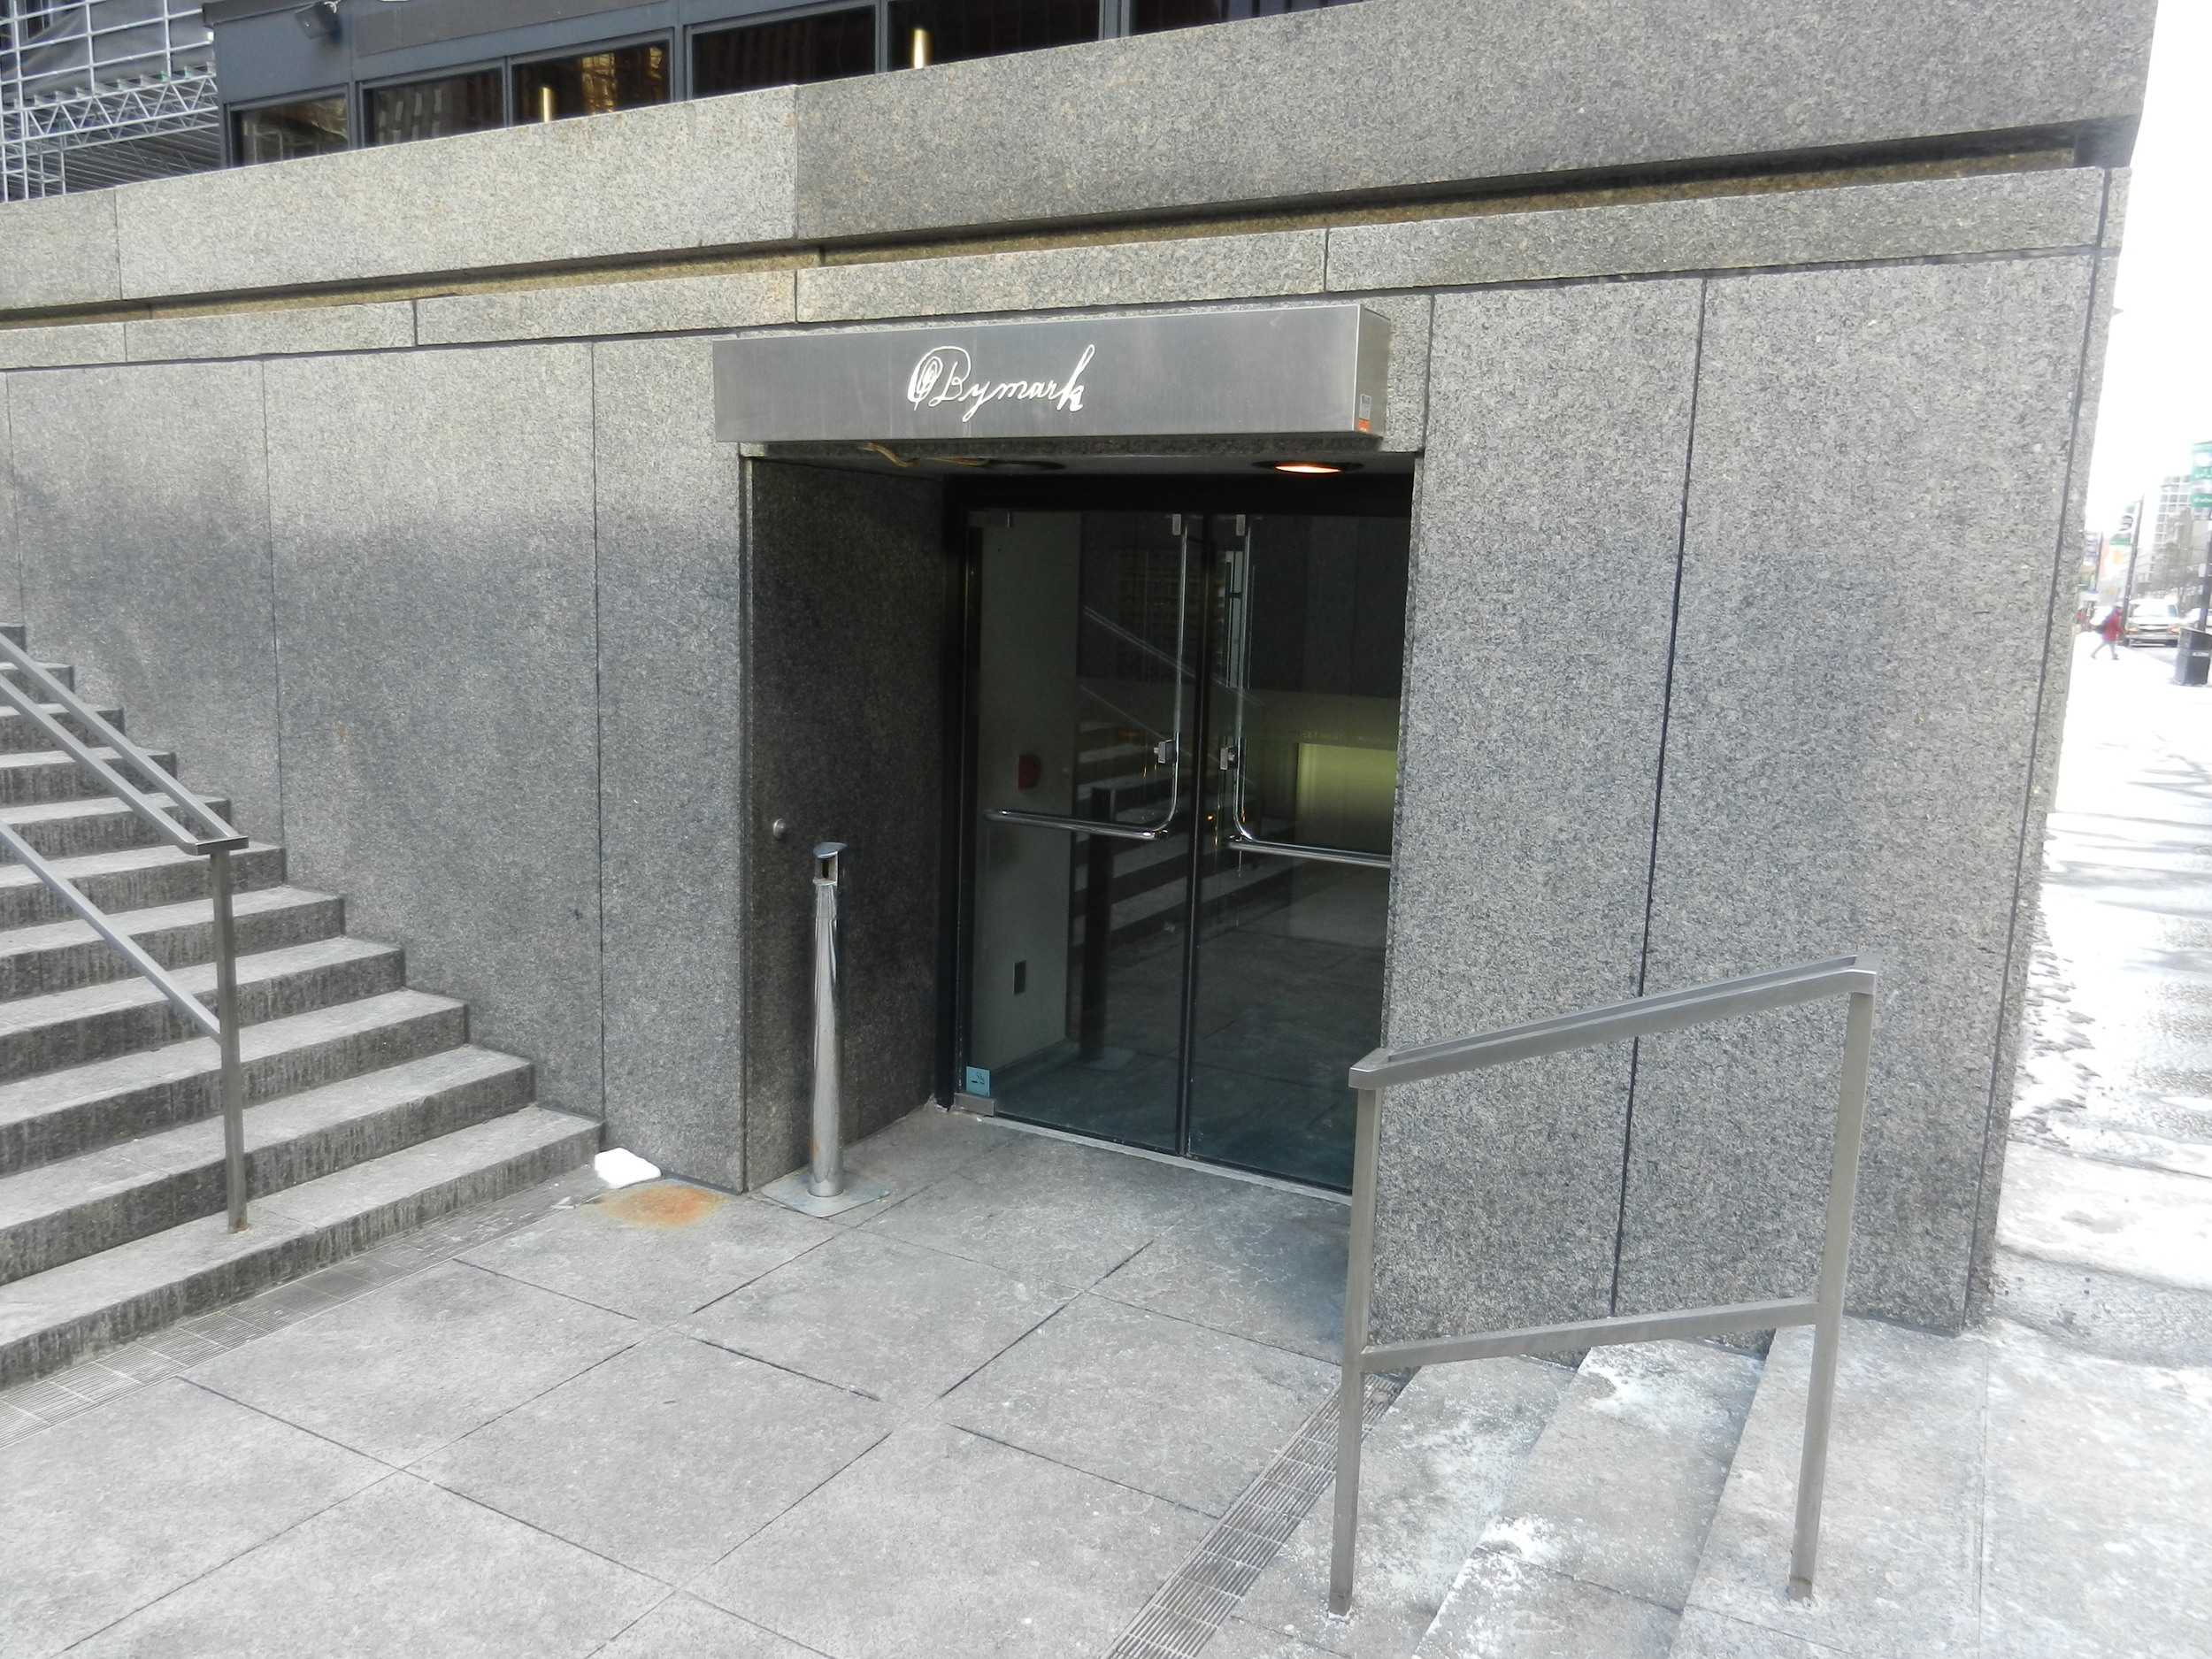 Picture of accessible entrance to restaurant.